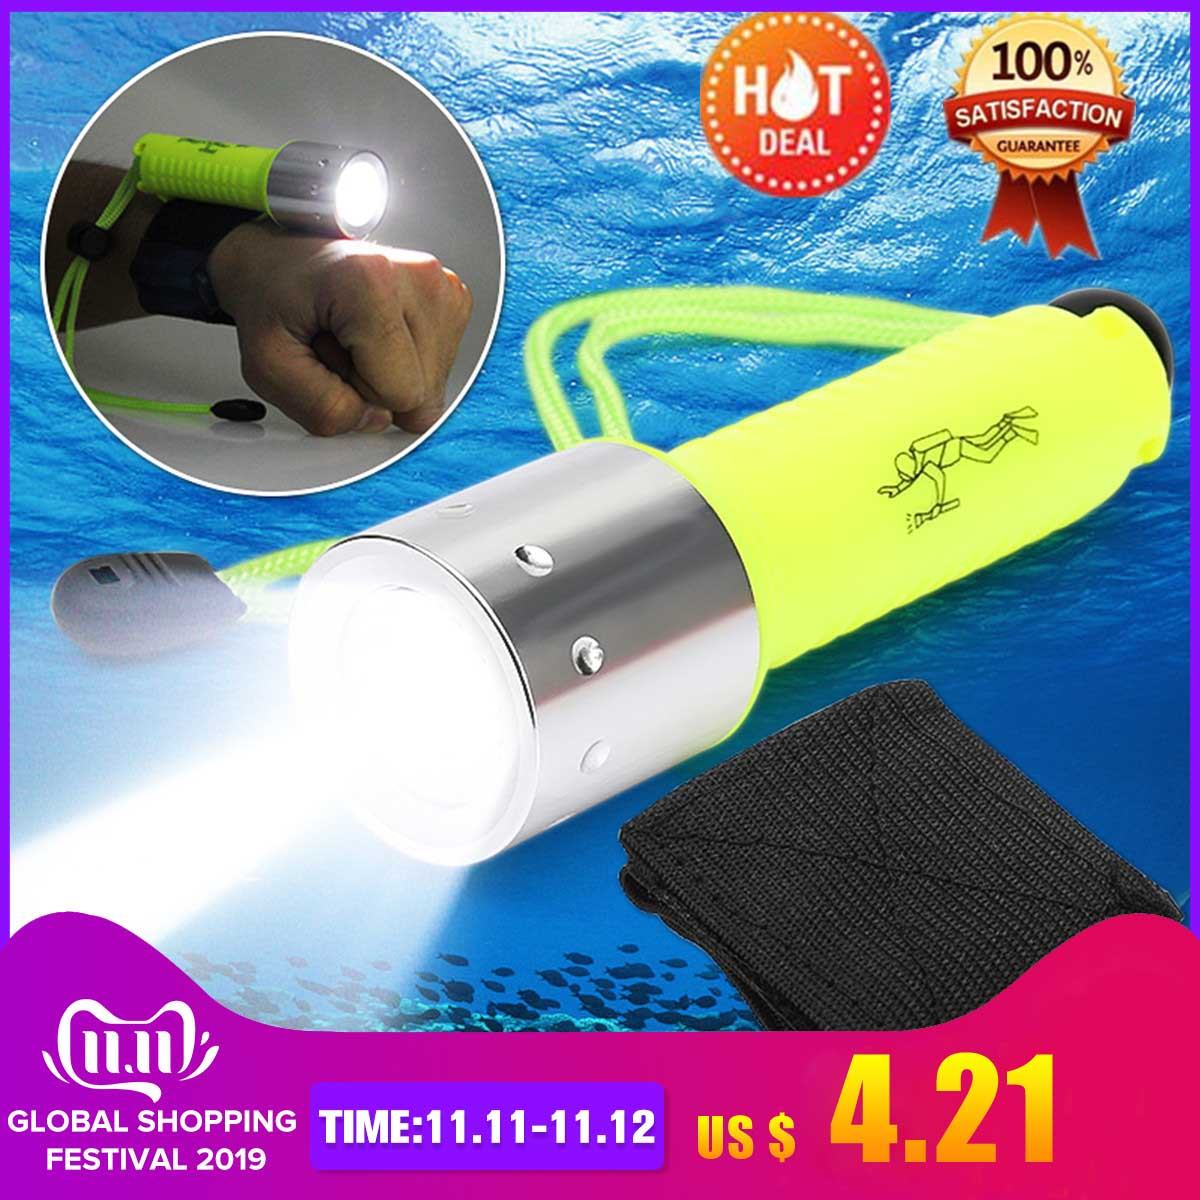 Smuxi 6000 Lumens Diving Flashlight Underwater 50m Torch 18650 Rechargeable LED Light Lamp For Diving Photography Video